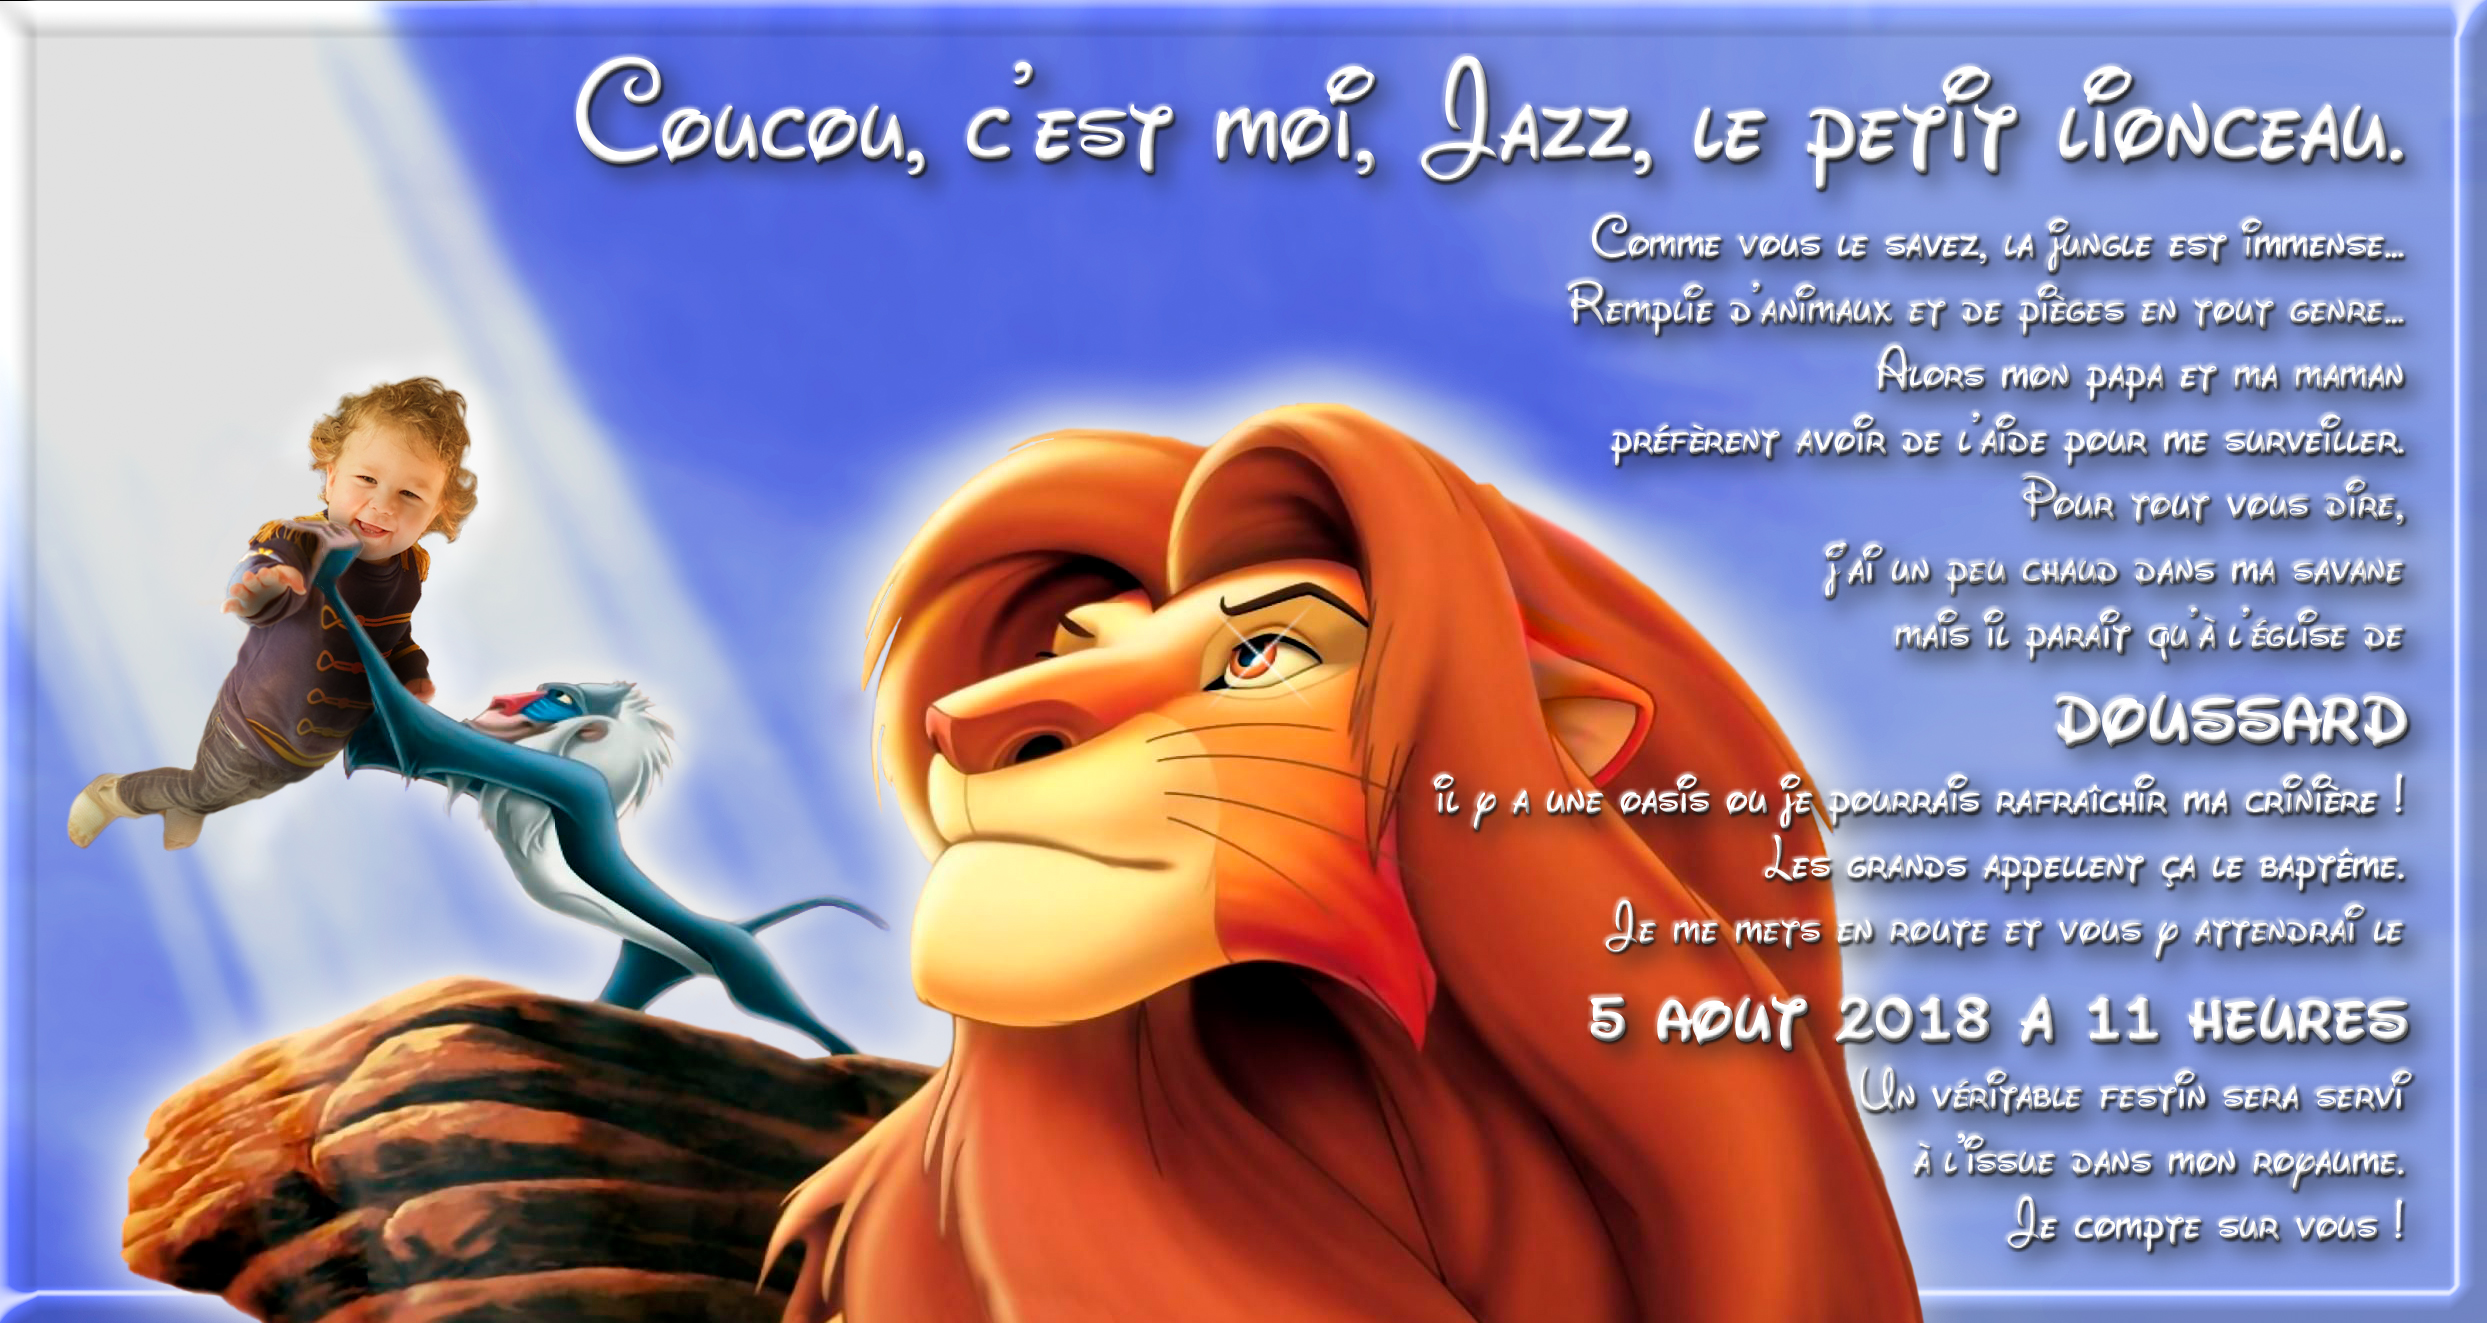 Faire part bapteme le roi lion  - Page 3 180326113517689073